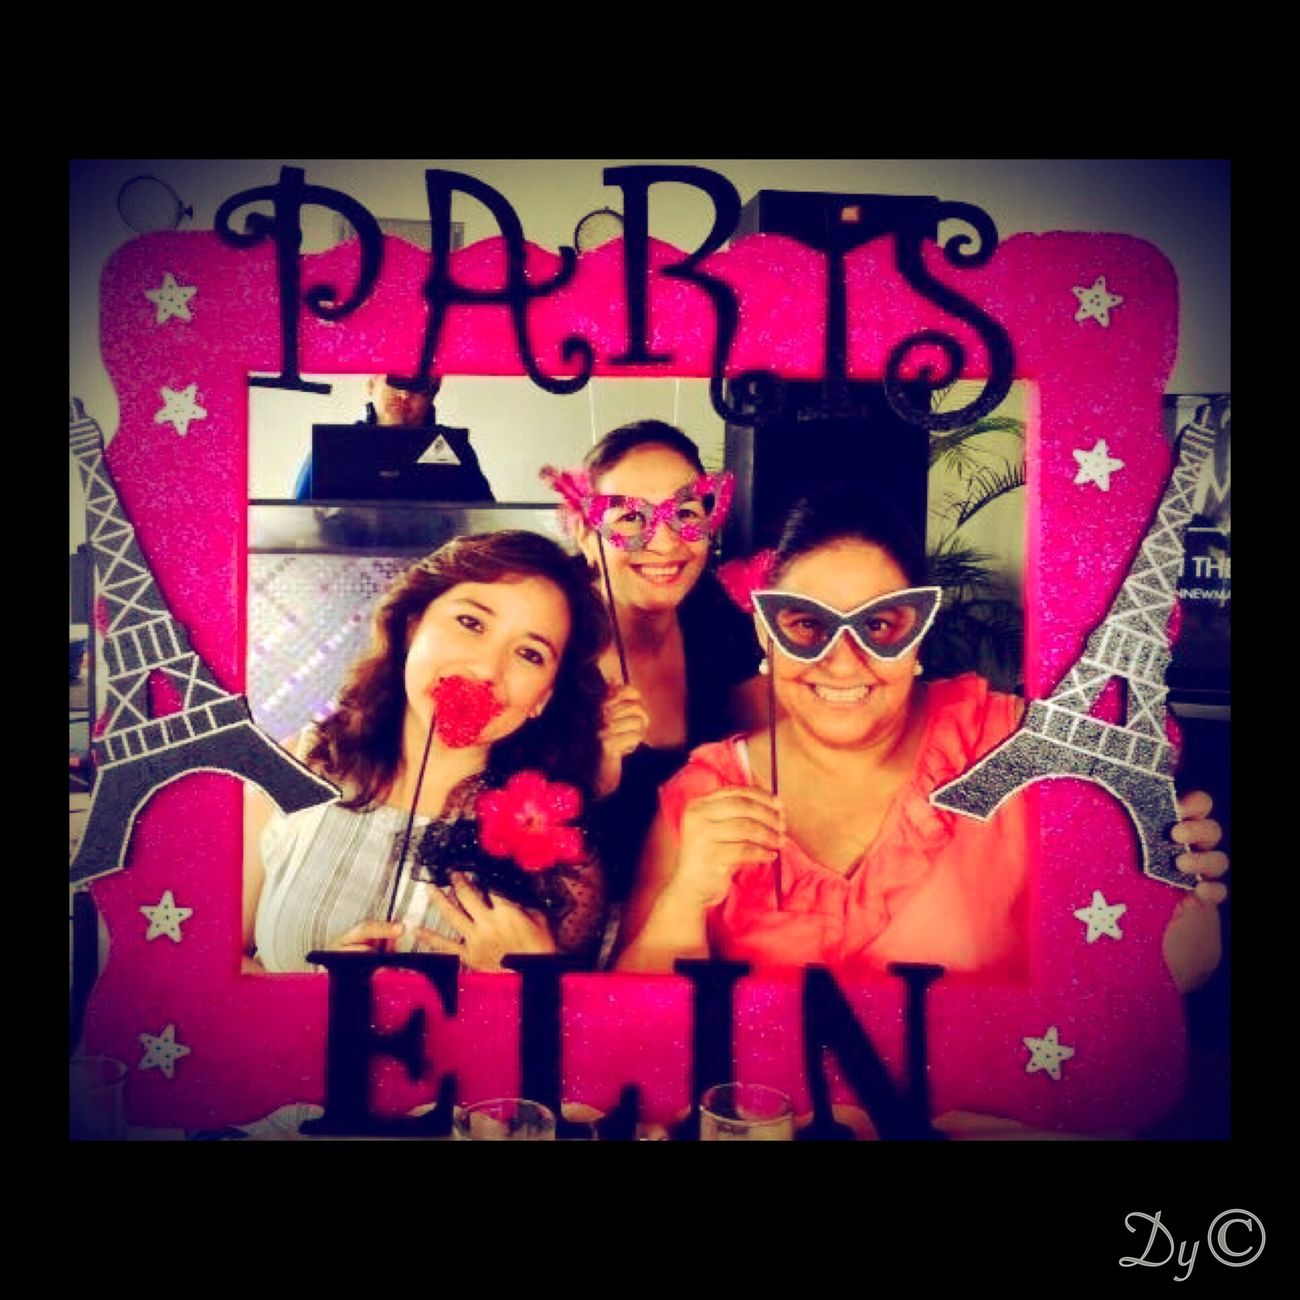 Elin 🎉 Party Time Friends Paris Themeparty Pink Women Party Smile :)